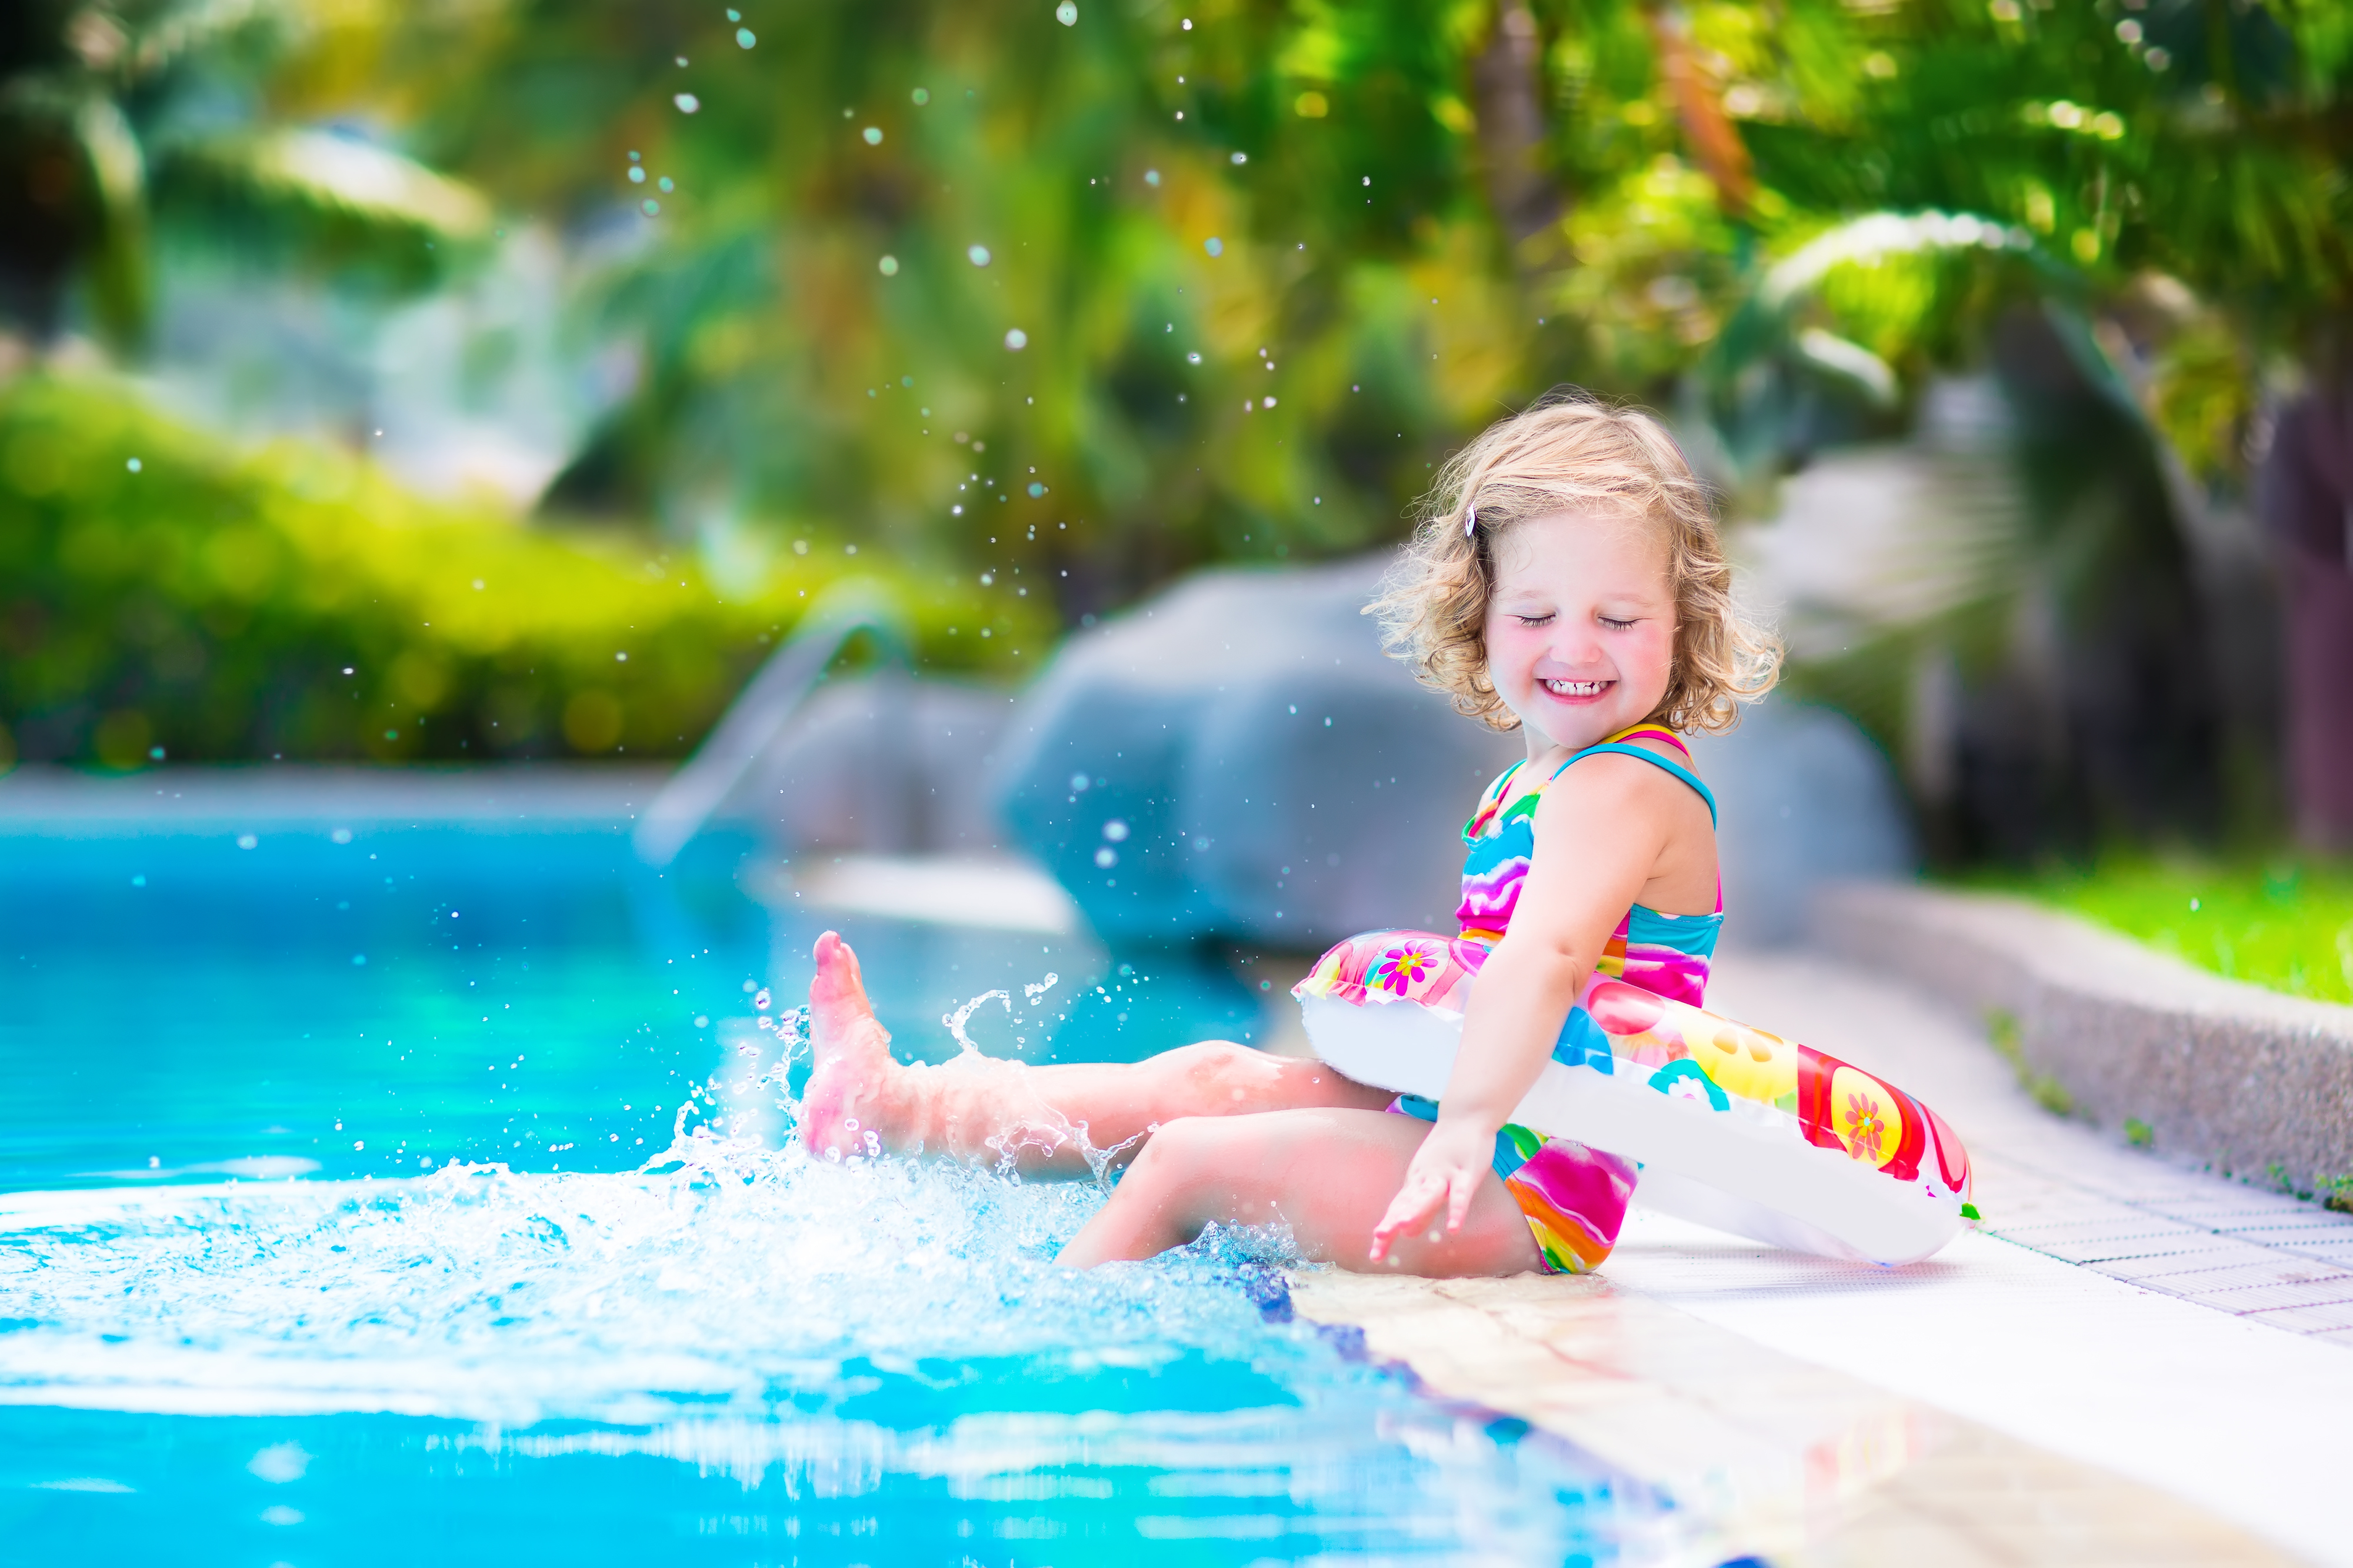 Adorable little girl with curly hair wearing a colorful swimming suit playing with water splashes at